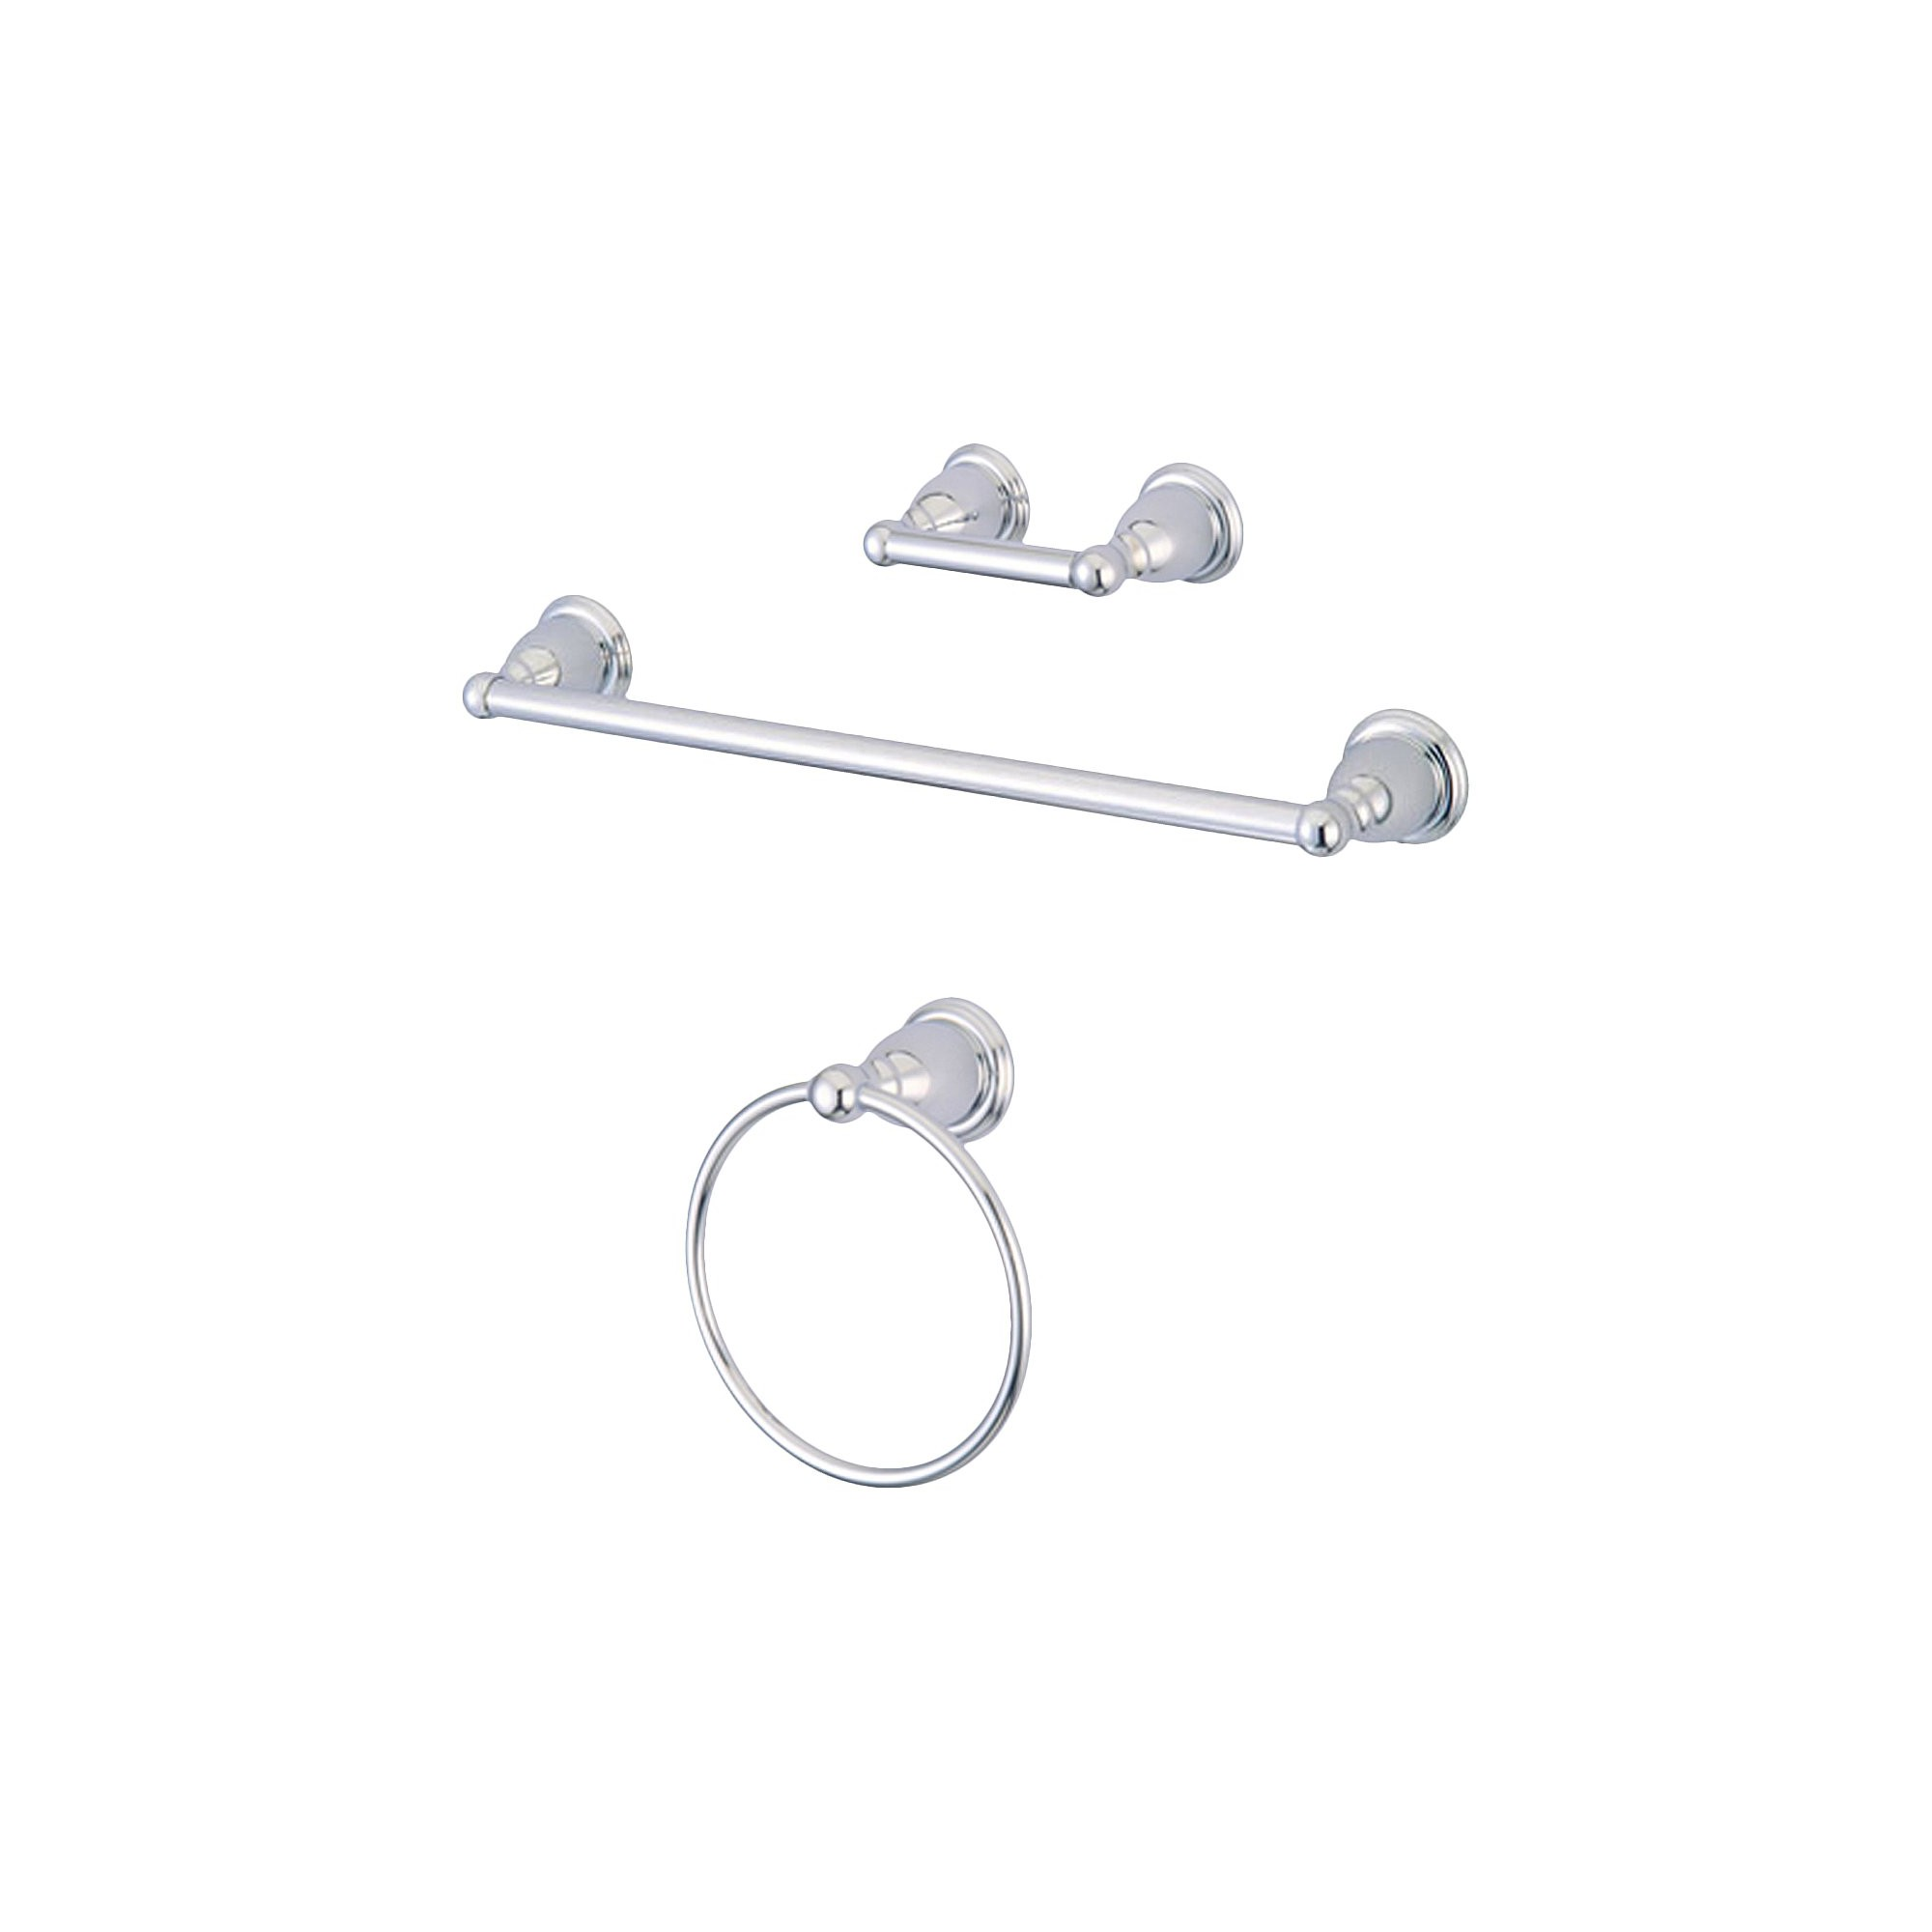 Traditional Solid Brass Chrome 3-piece Towel Bar Bath Accessory Set - Kingston Brass